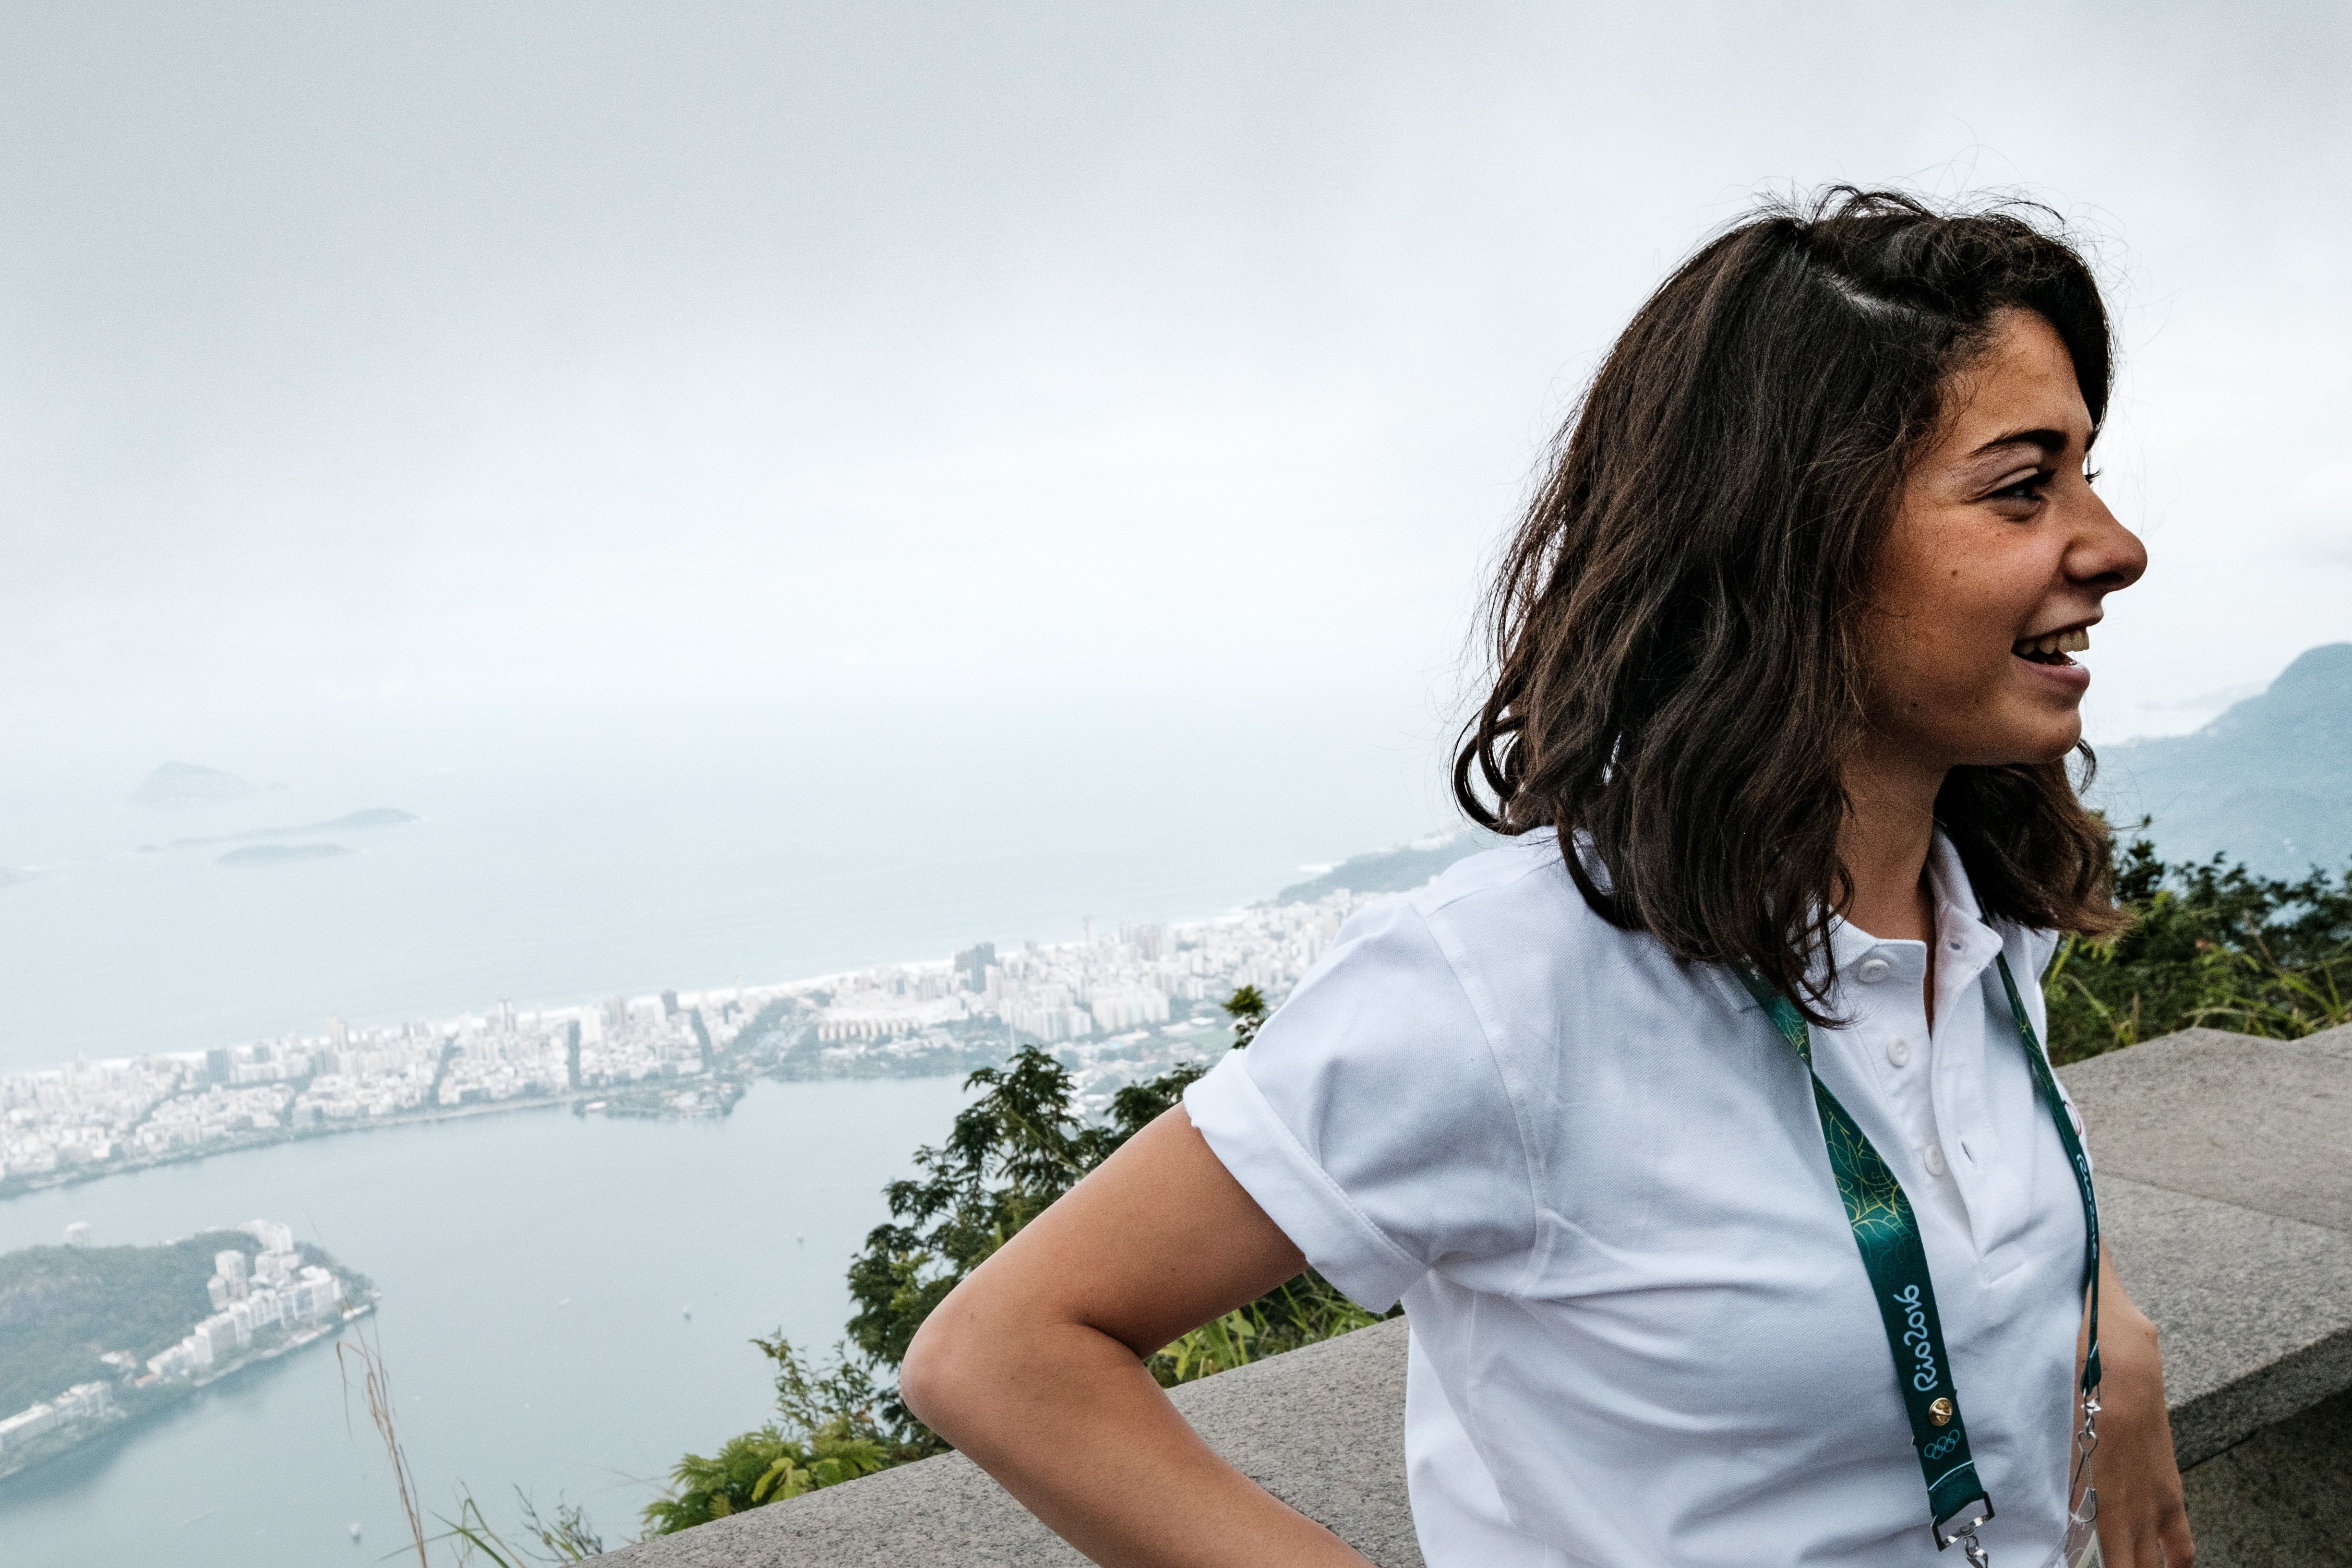 Syria's swimmer Yusra Mardini based in Germany for the Refugee Olympic Team (ROT) visits the statue of Christ the Redeemer, ahead of Rio 2016 Olympic games in Rio de Janeiro, Brazil, on July 30, 2016. The International Olympic Committee (IOC) selects 10 refugee athletes to set a refugee's team for the first time, to bring about hope to people displaced by conflicts or war in the world. / AFP PHOTO / YASUYOSHI CHIBA